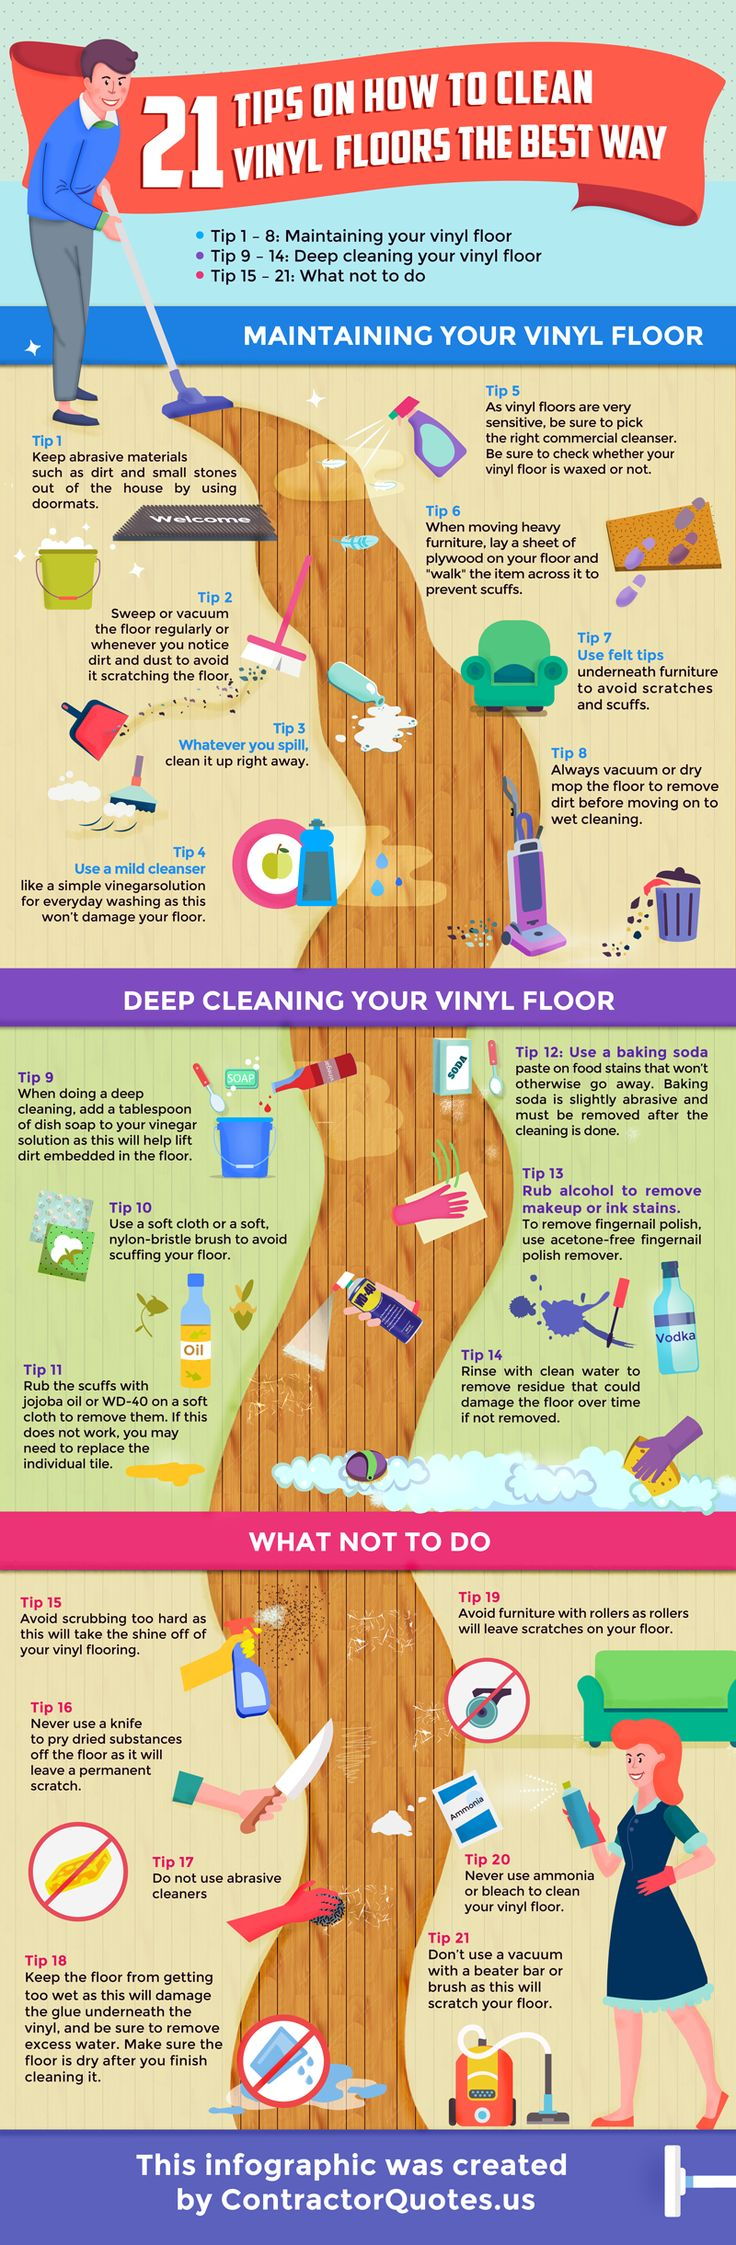 how to clean vinyl plank floors the best way - infographic.png